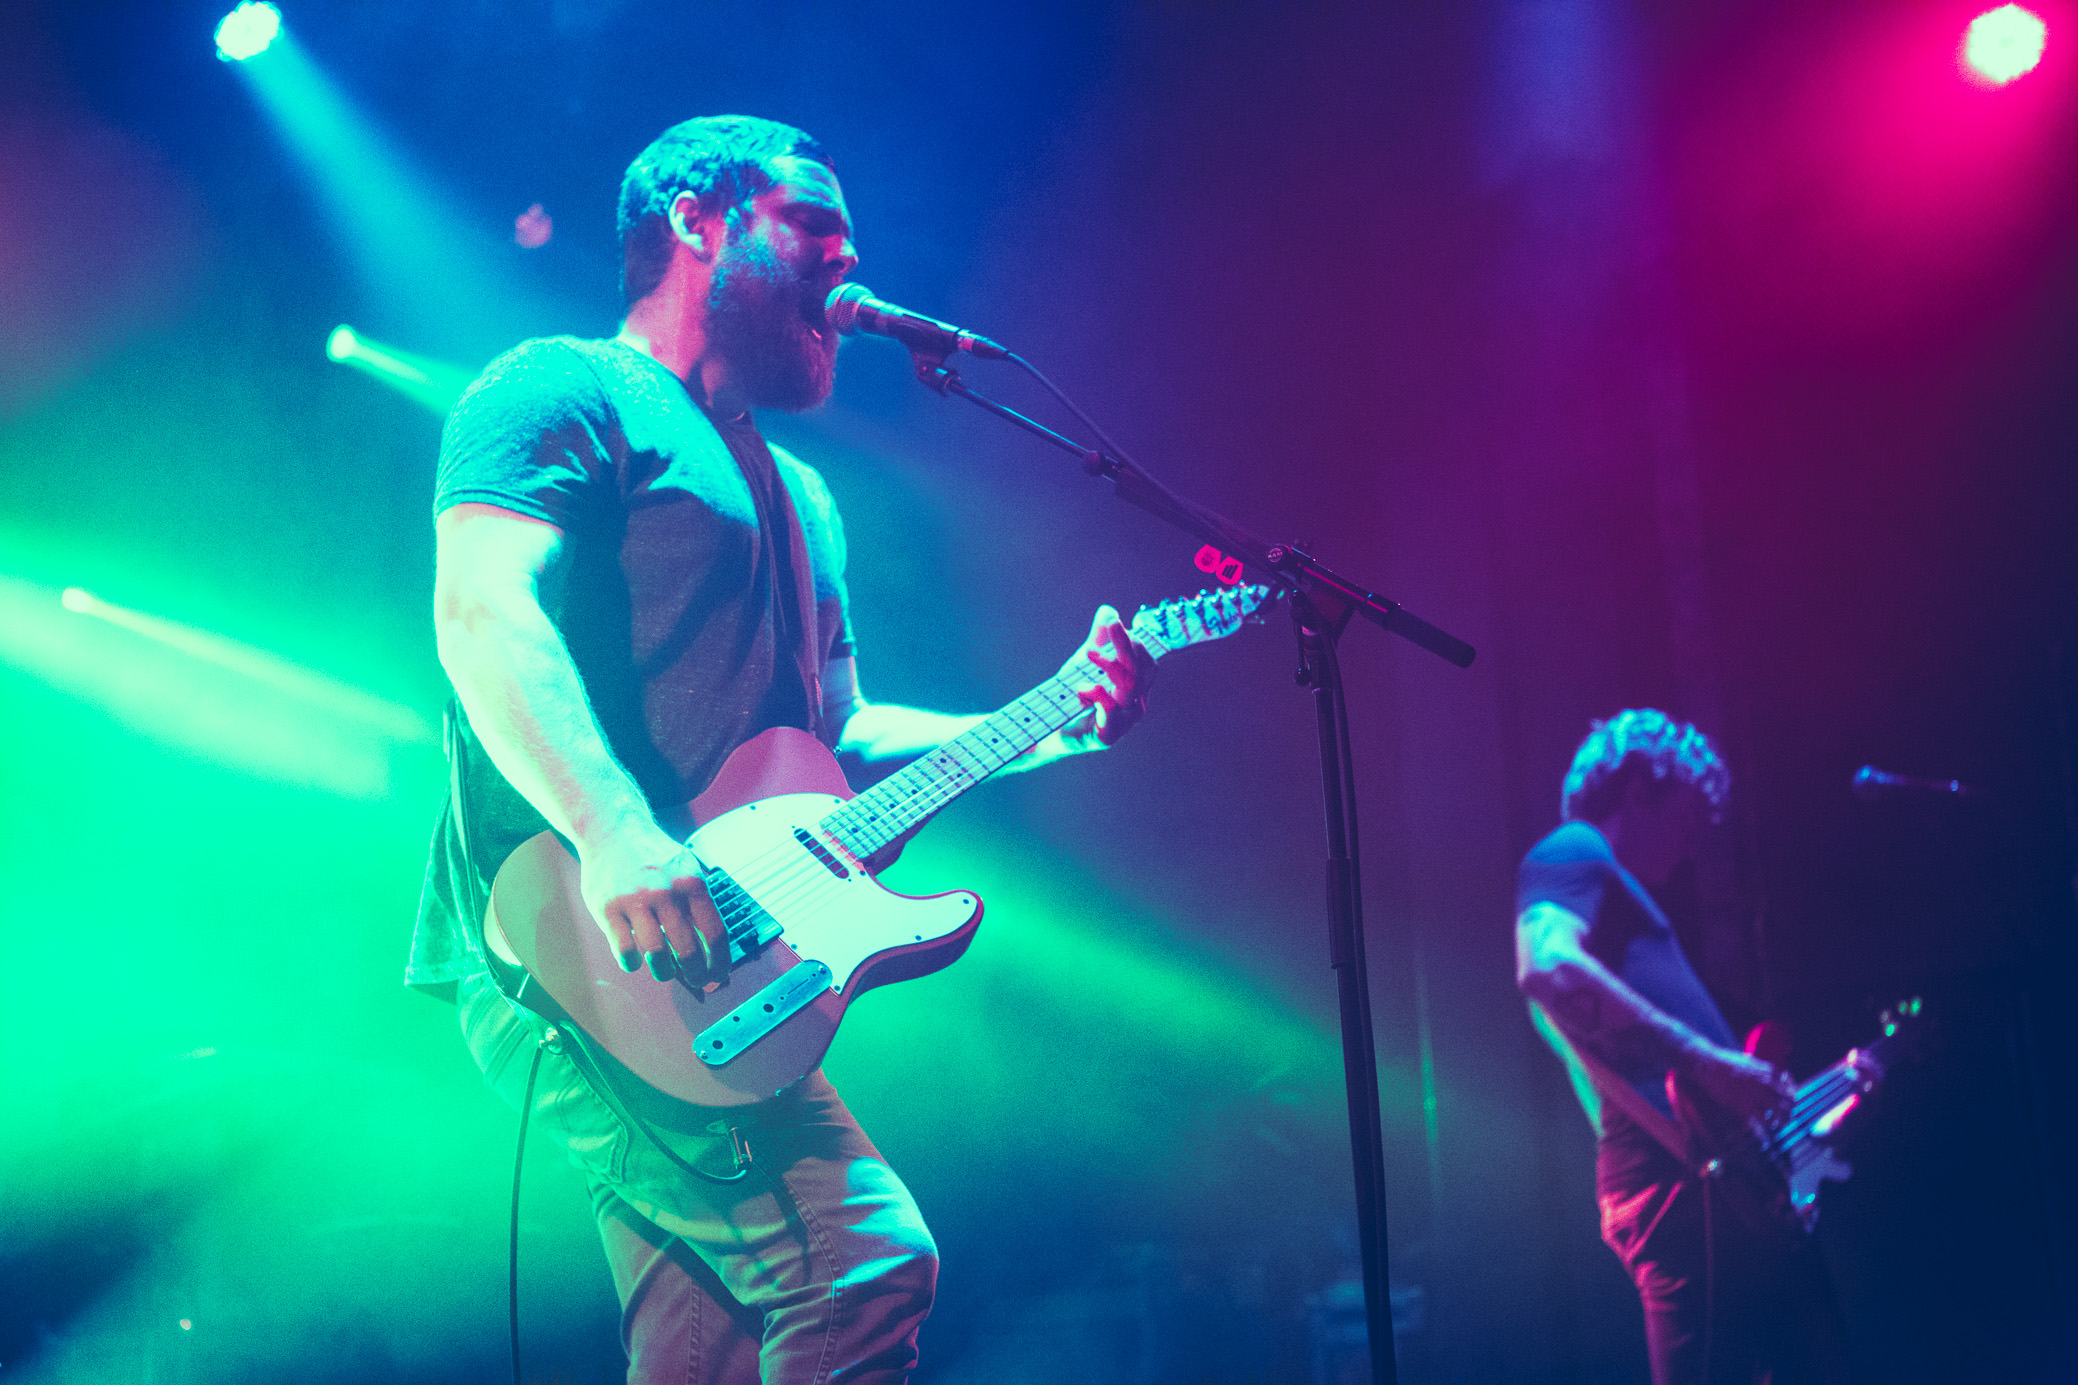 Manchester Orchestra performs in concert at Iron City in Birmingham, Alabama on August 10th, 2018. (Photo by David A. Smith/DSmithScenes)